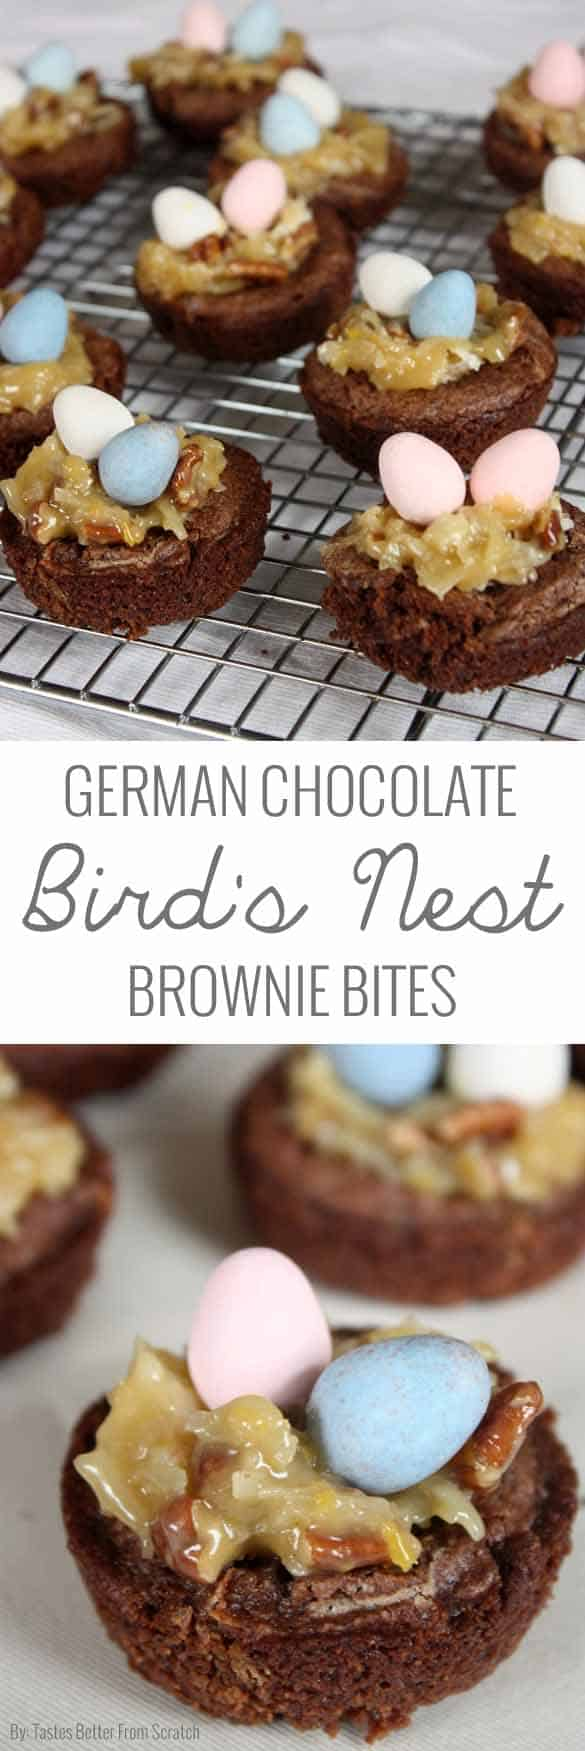 These German chocolate bird's nest brownie bites are beyond delicious! So fun and festive too!